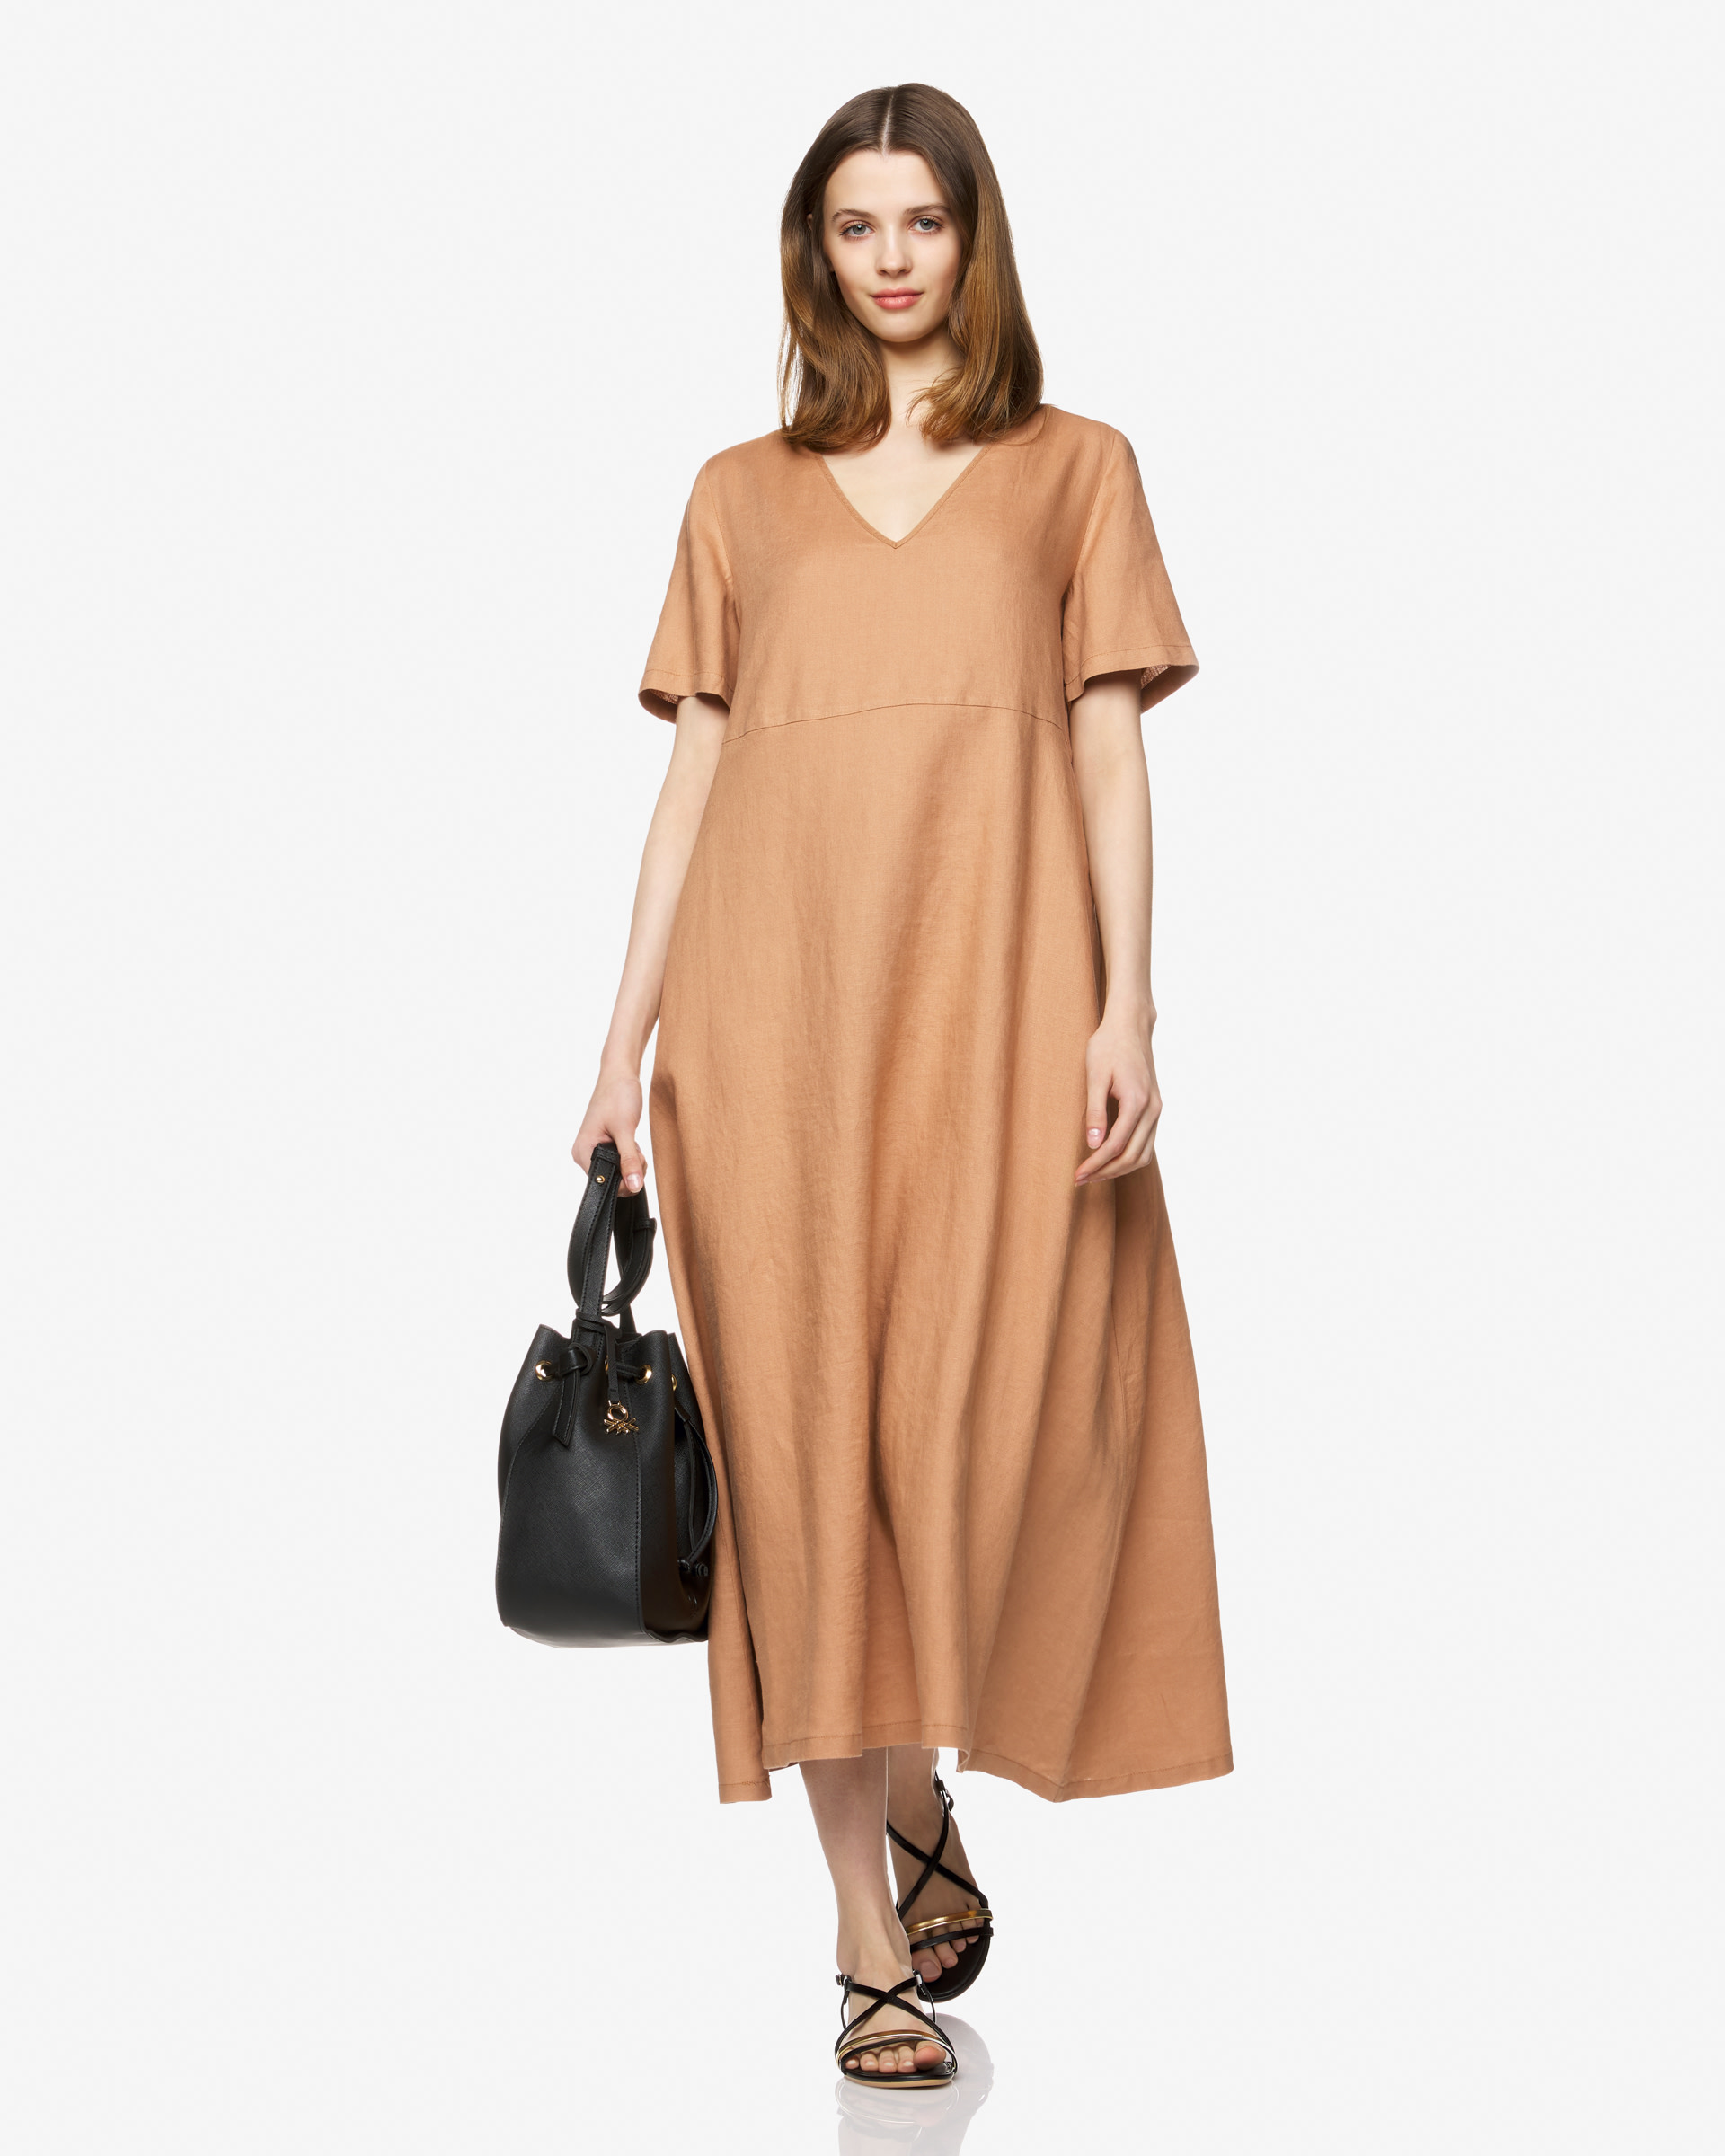 UNITED COLORS OF BENETTON 20P_4AGH5VBO5